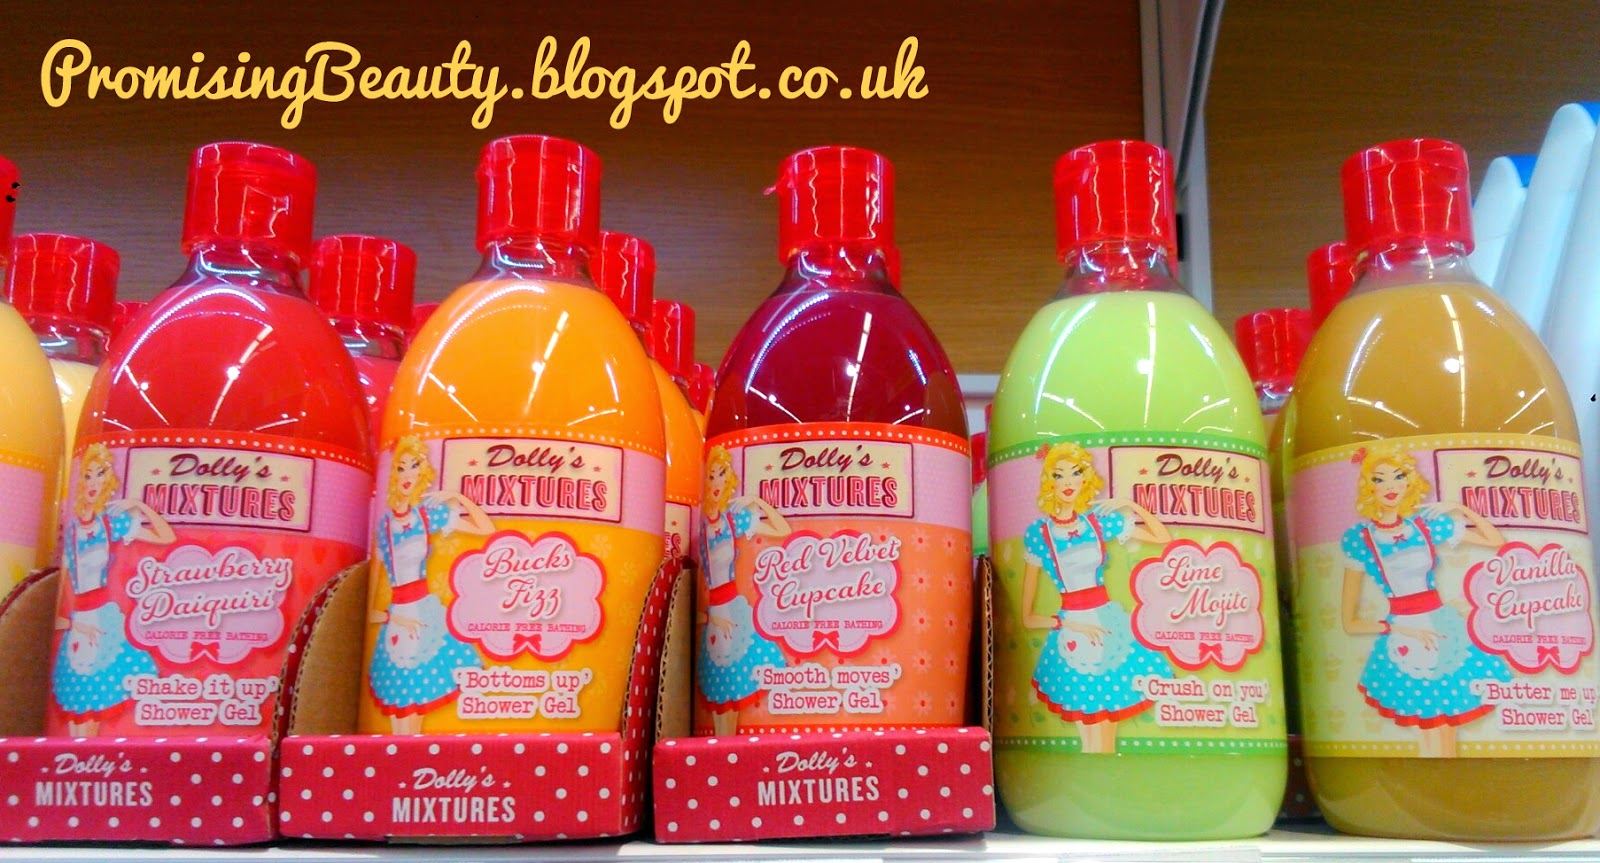 Can Shower Gel Be Used As Bubble Bath Promising Beauty Dolly S Mixtures Bubble Bath Shower Gel